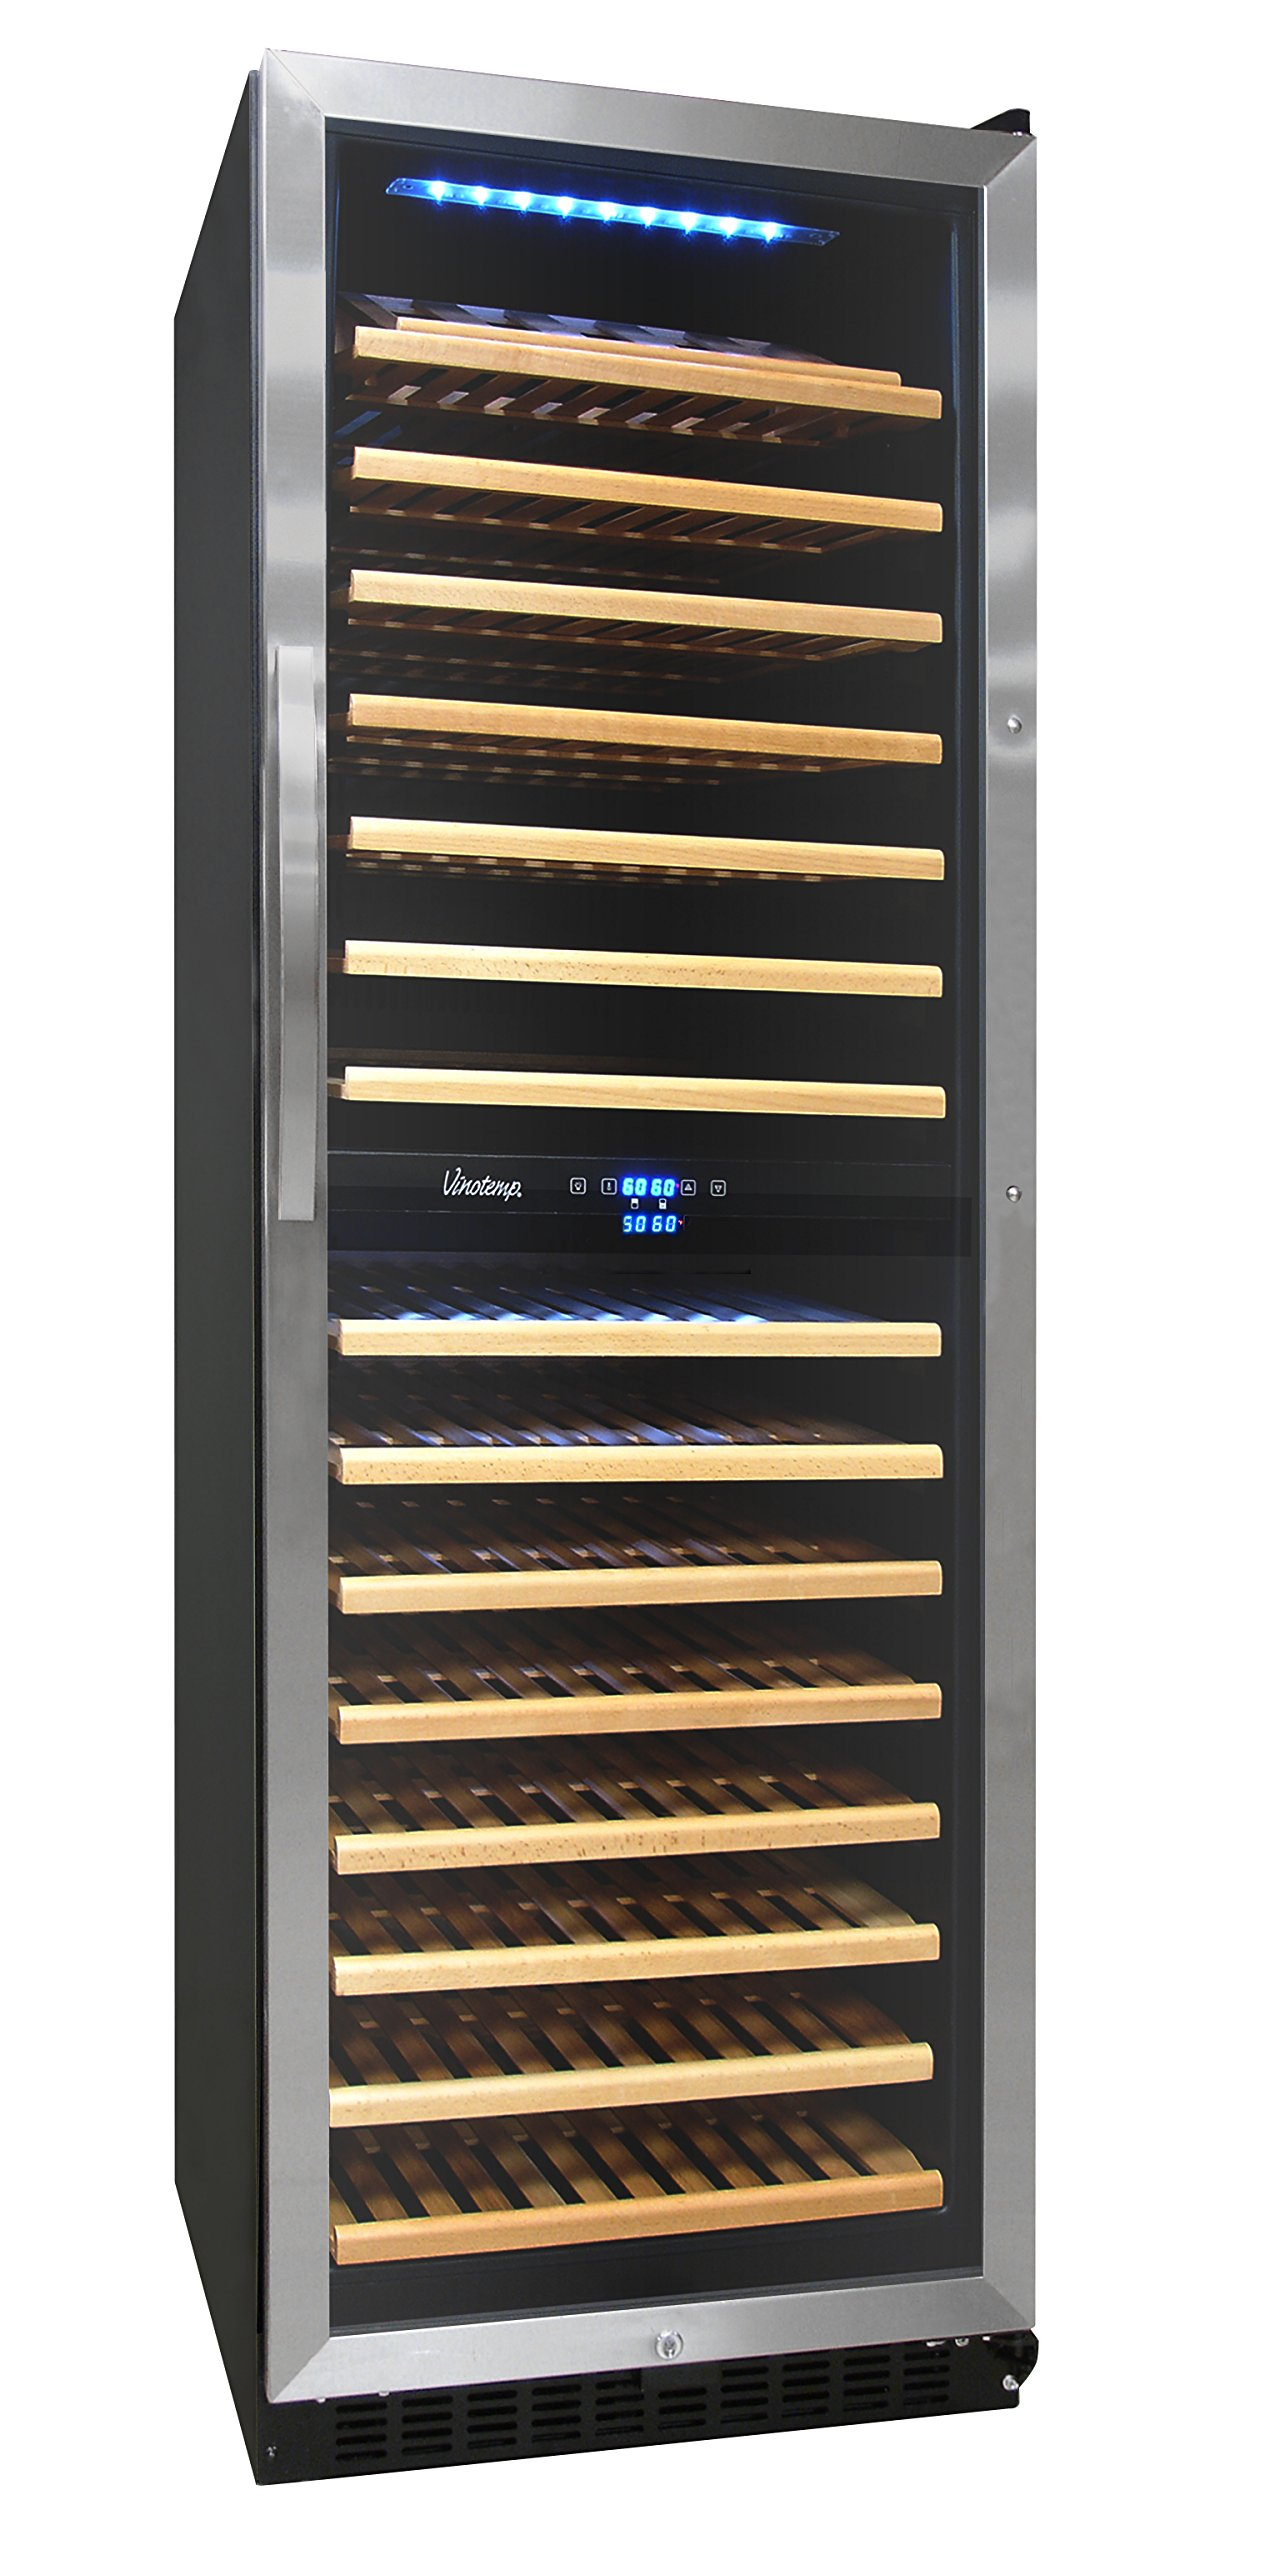 Vinotemp VNTVT-155SBW 155-Bottle Dual-Zone Wine Cooler by Vinotemp